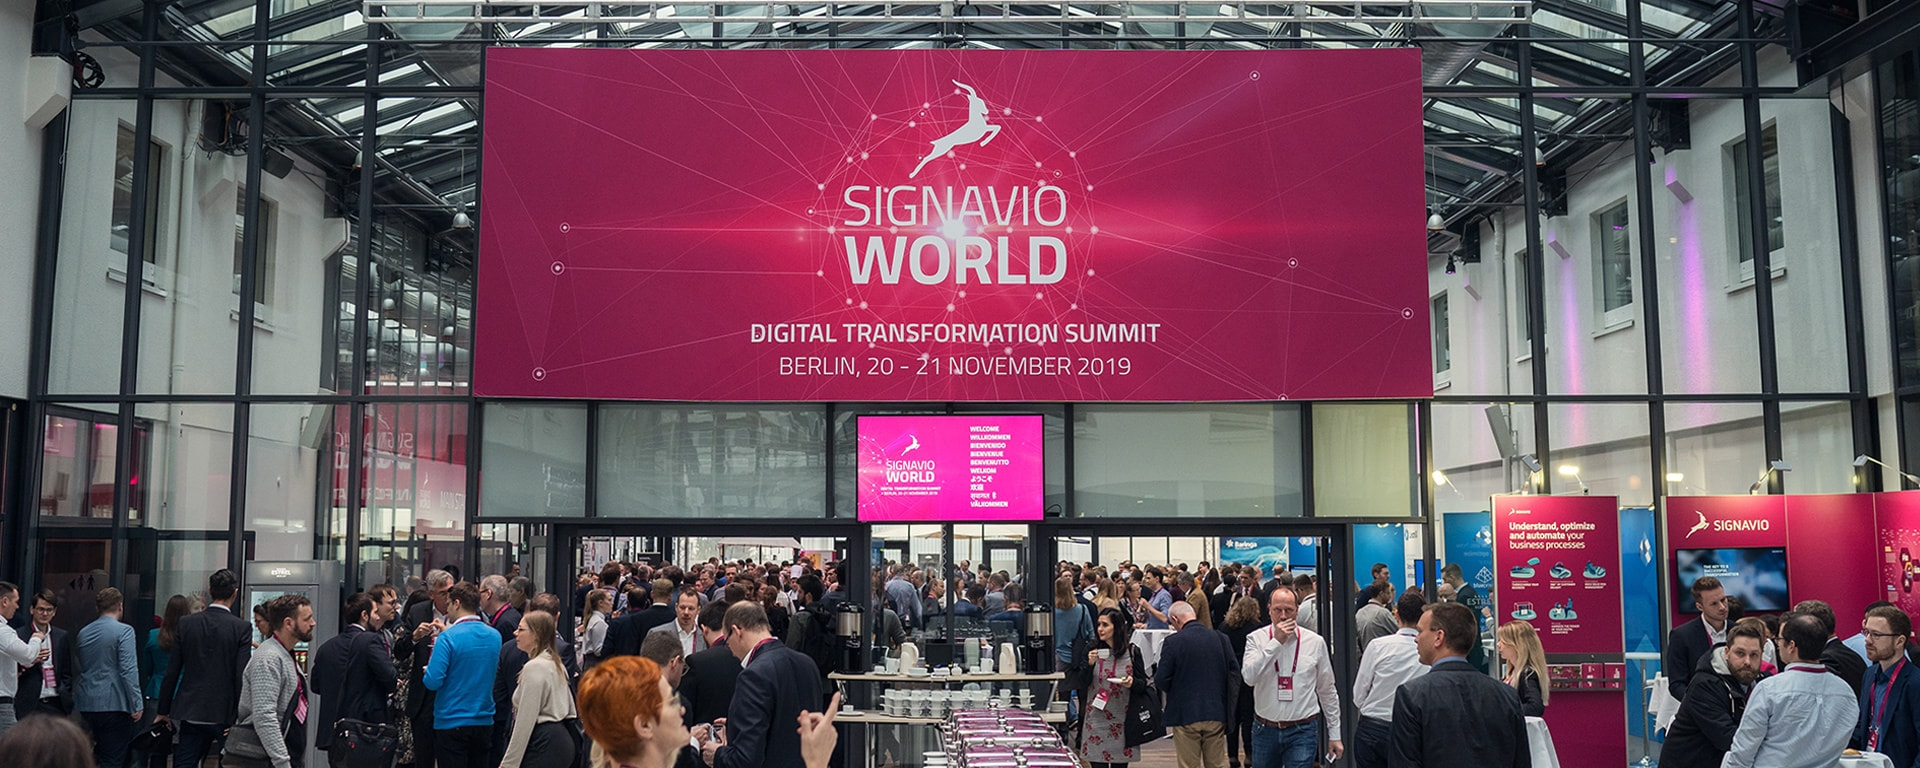 Signavio World 2019 entrance hall with sign